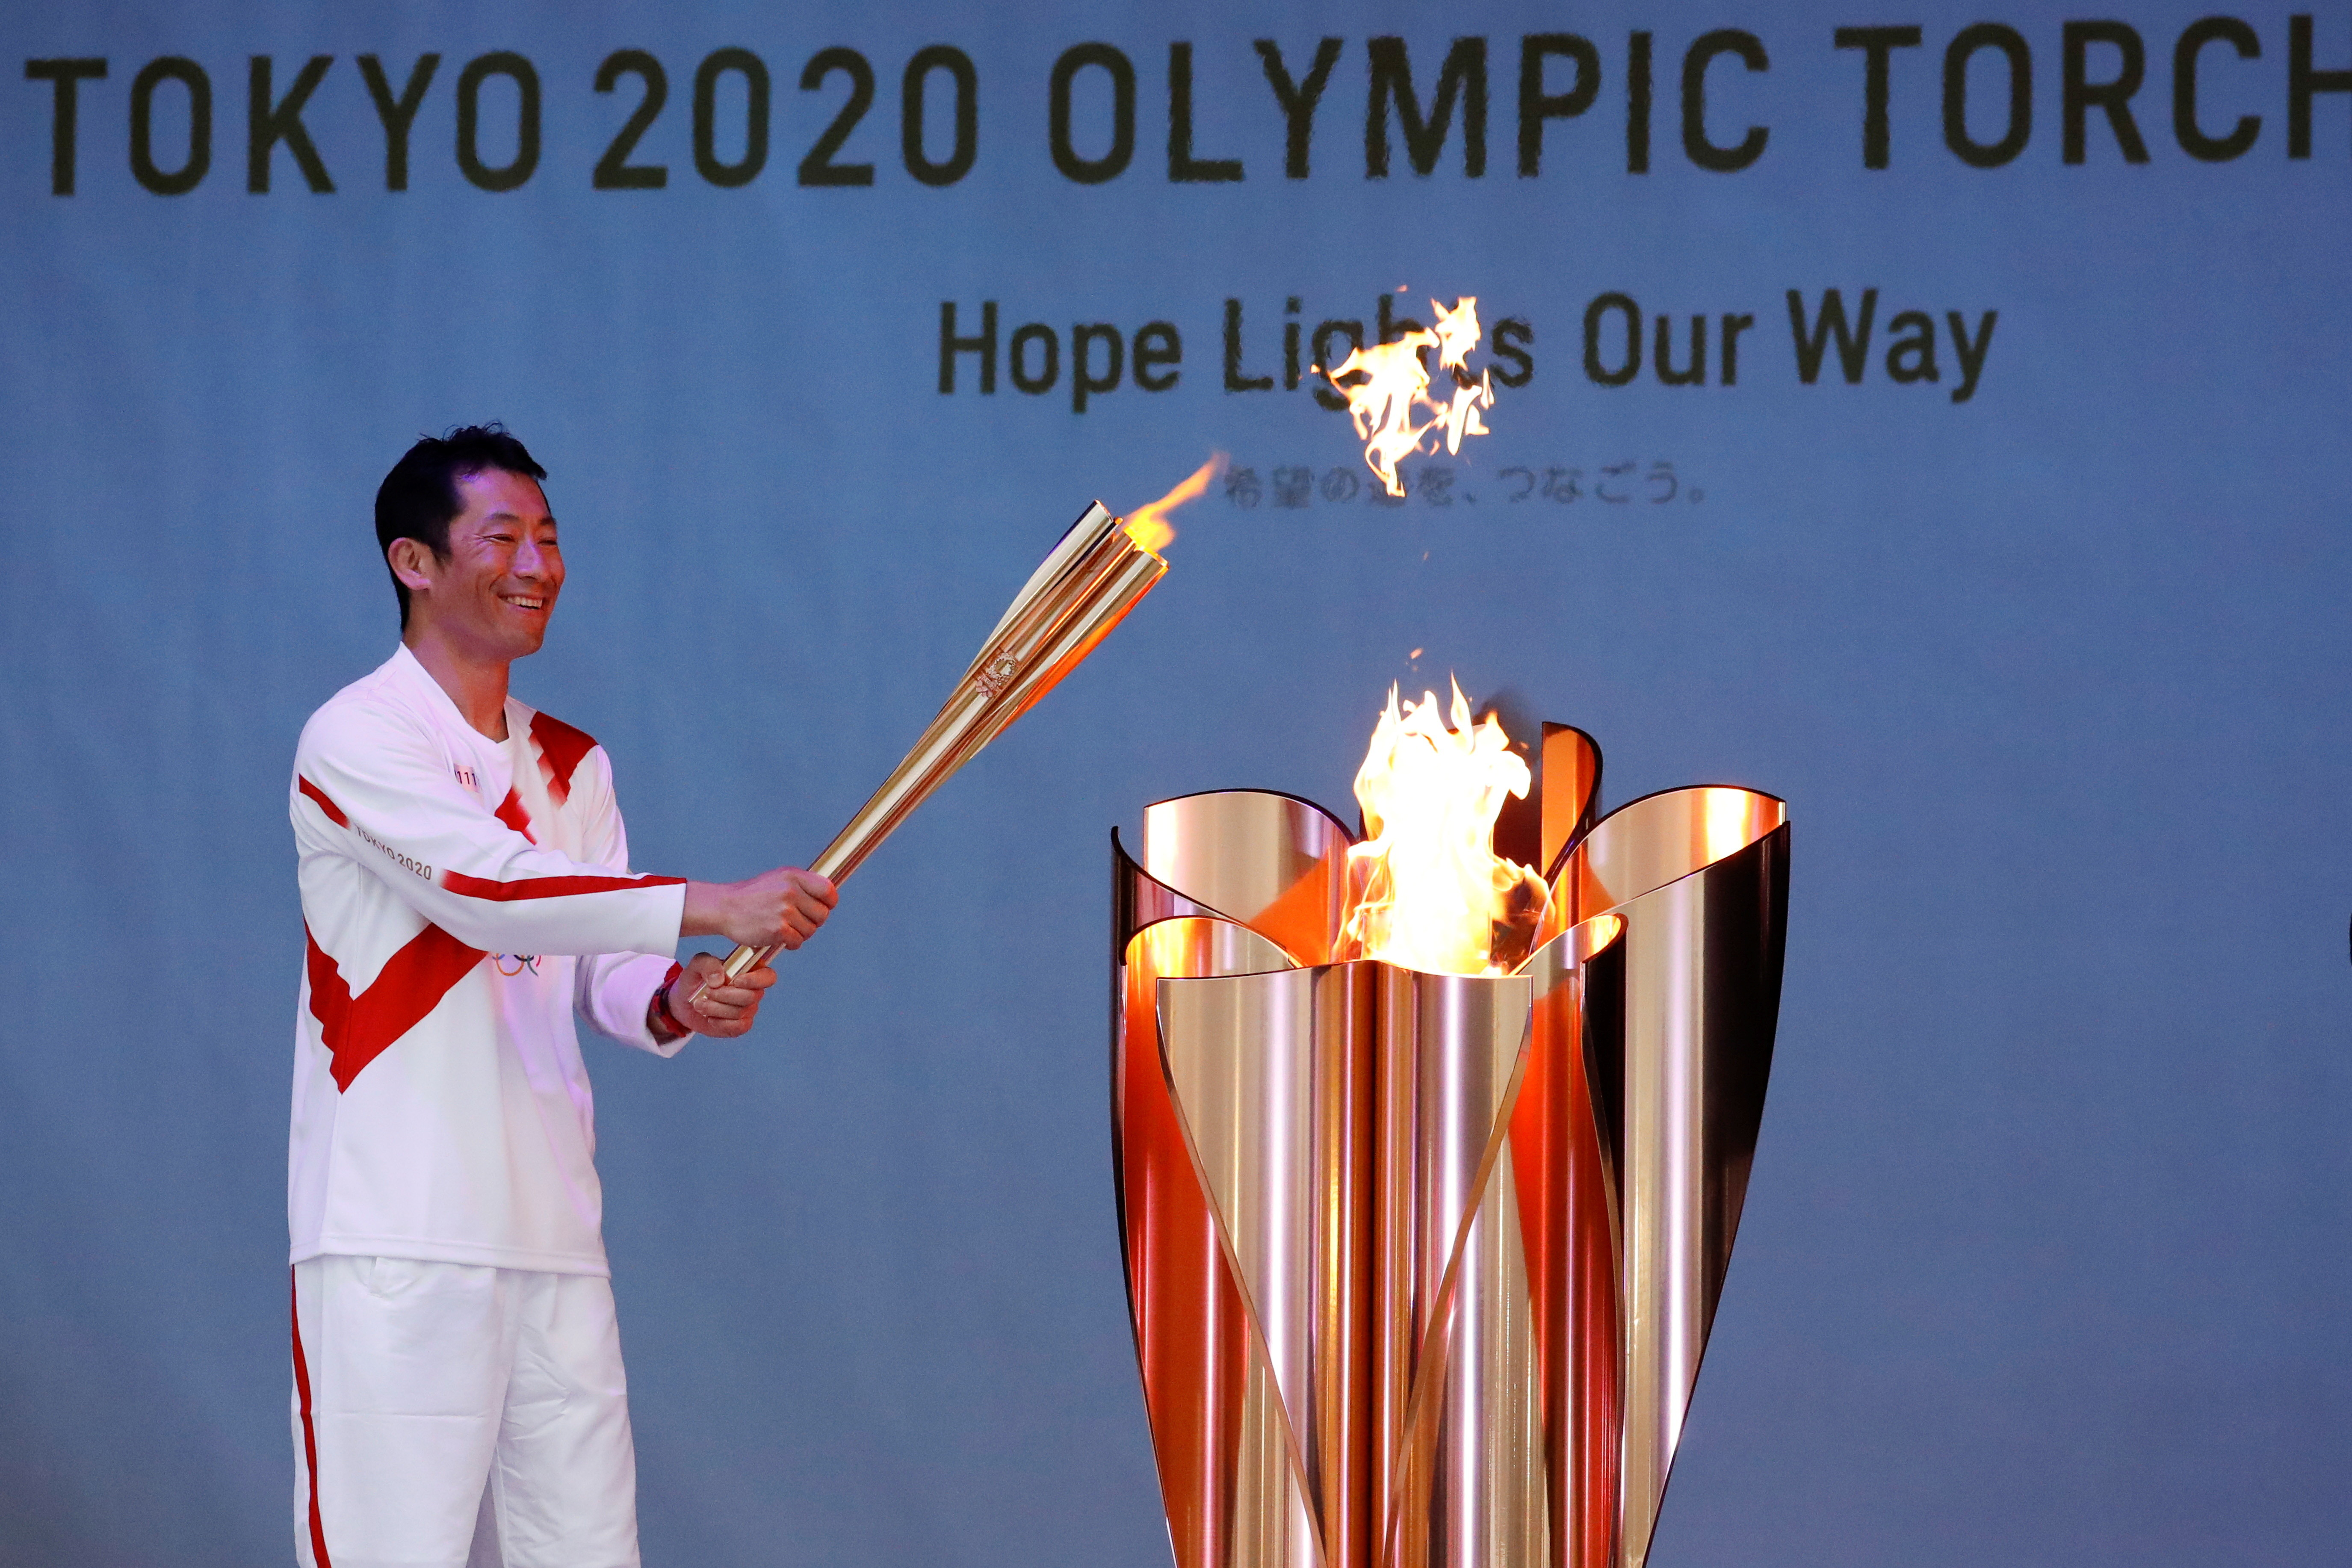 Olympic torch bearer Yoshihide Muroya, Japanese aerobatics pilot and race pilot of the Red Bull Air Race World Championship, lights the celebration cauldron at Hibarigahara Festival Site, during the last leg of the first day of the Tokyo 2020 Olympic torch relay, in Minamisoma, Fukushima prefecture, Japan, March 25, 2021.